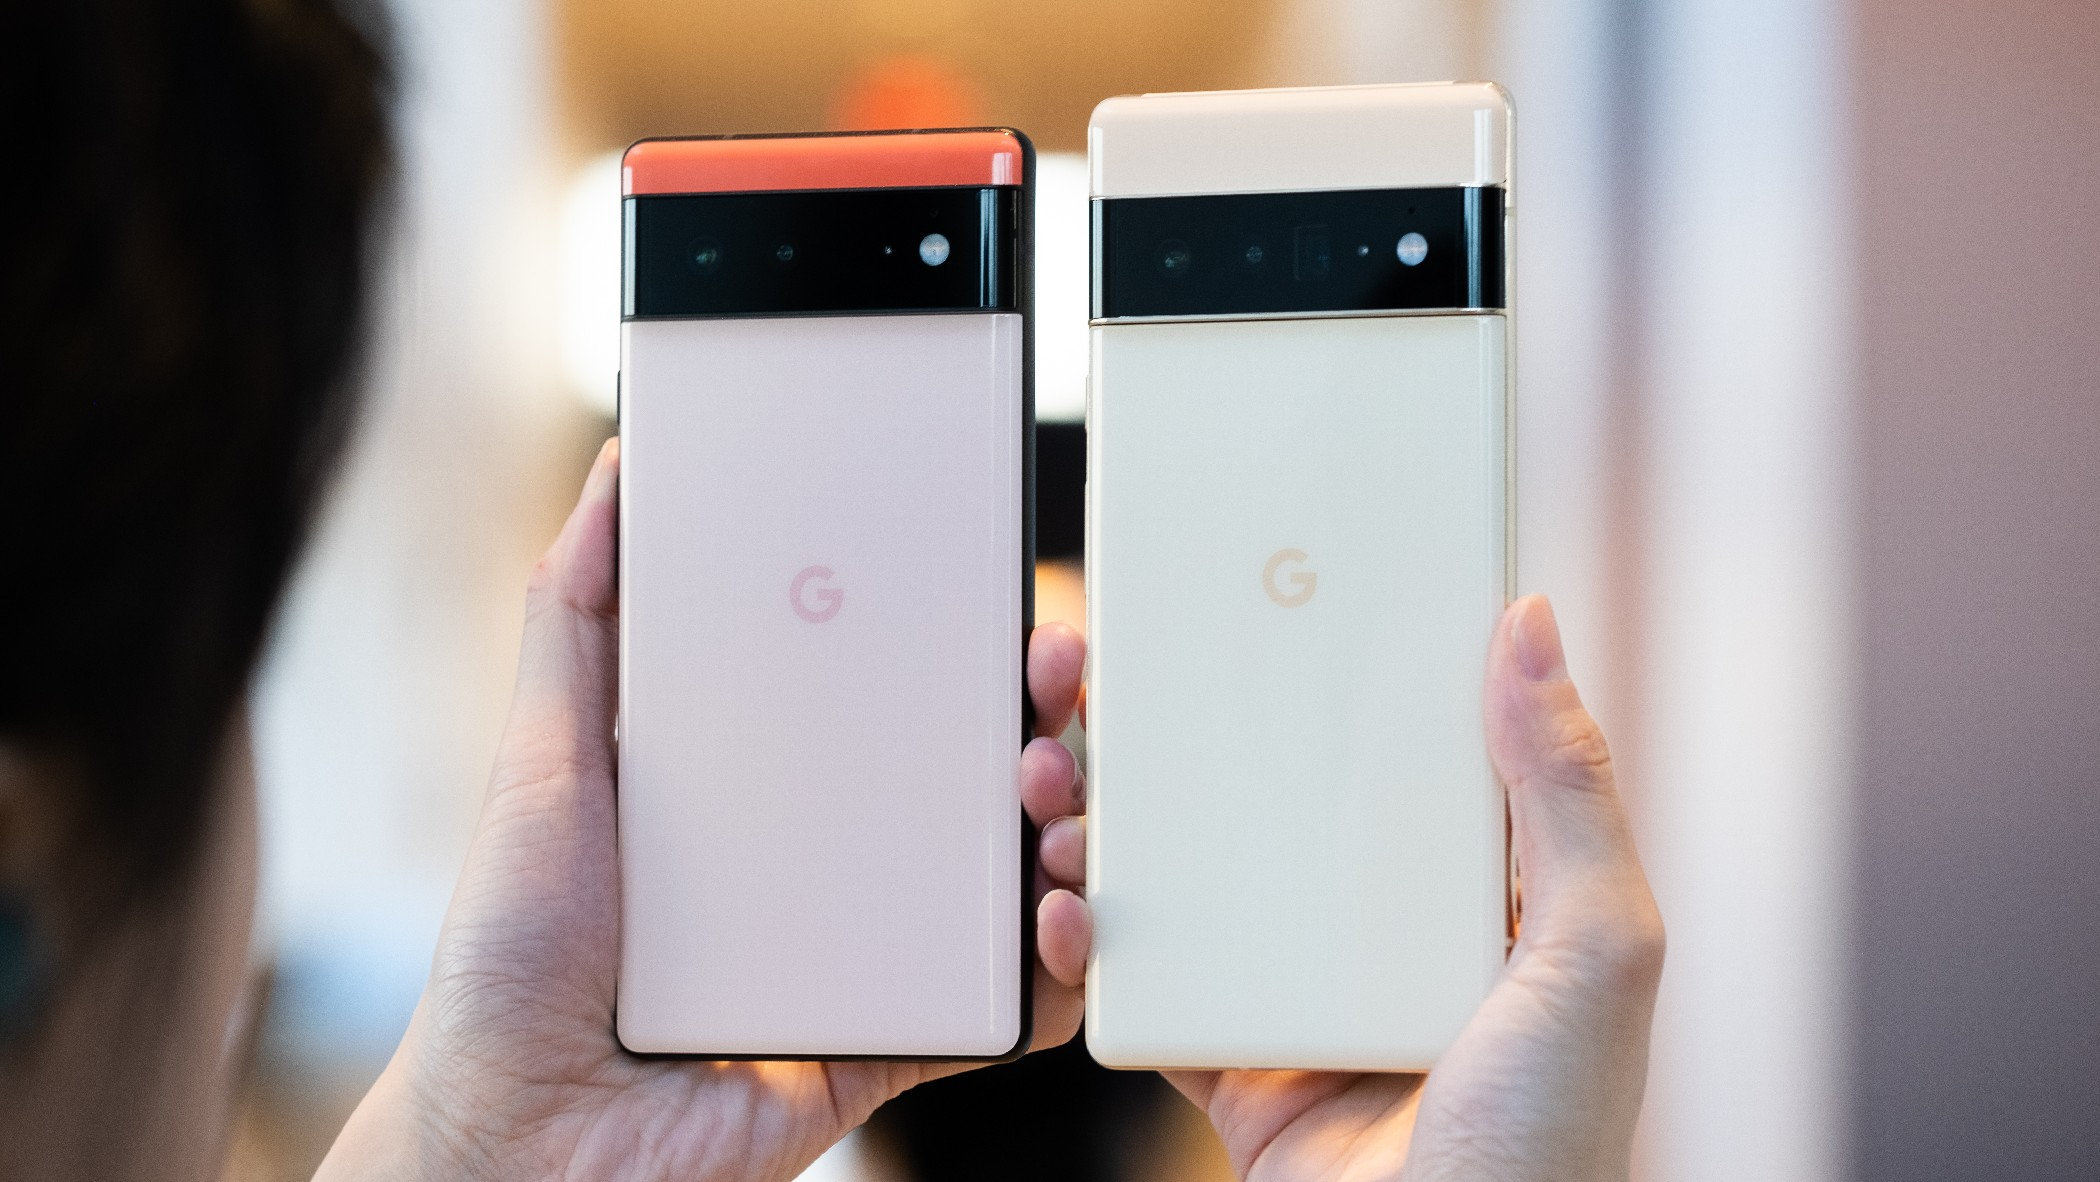 The Google Pixel 6 and 6 Pro held up in mid-air with their camera bars facing out.